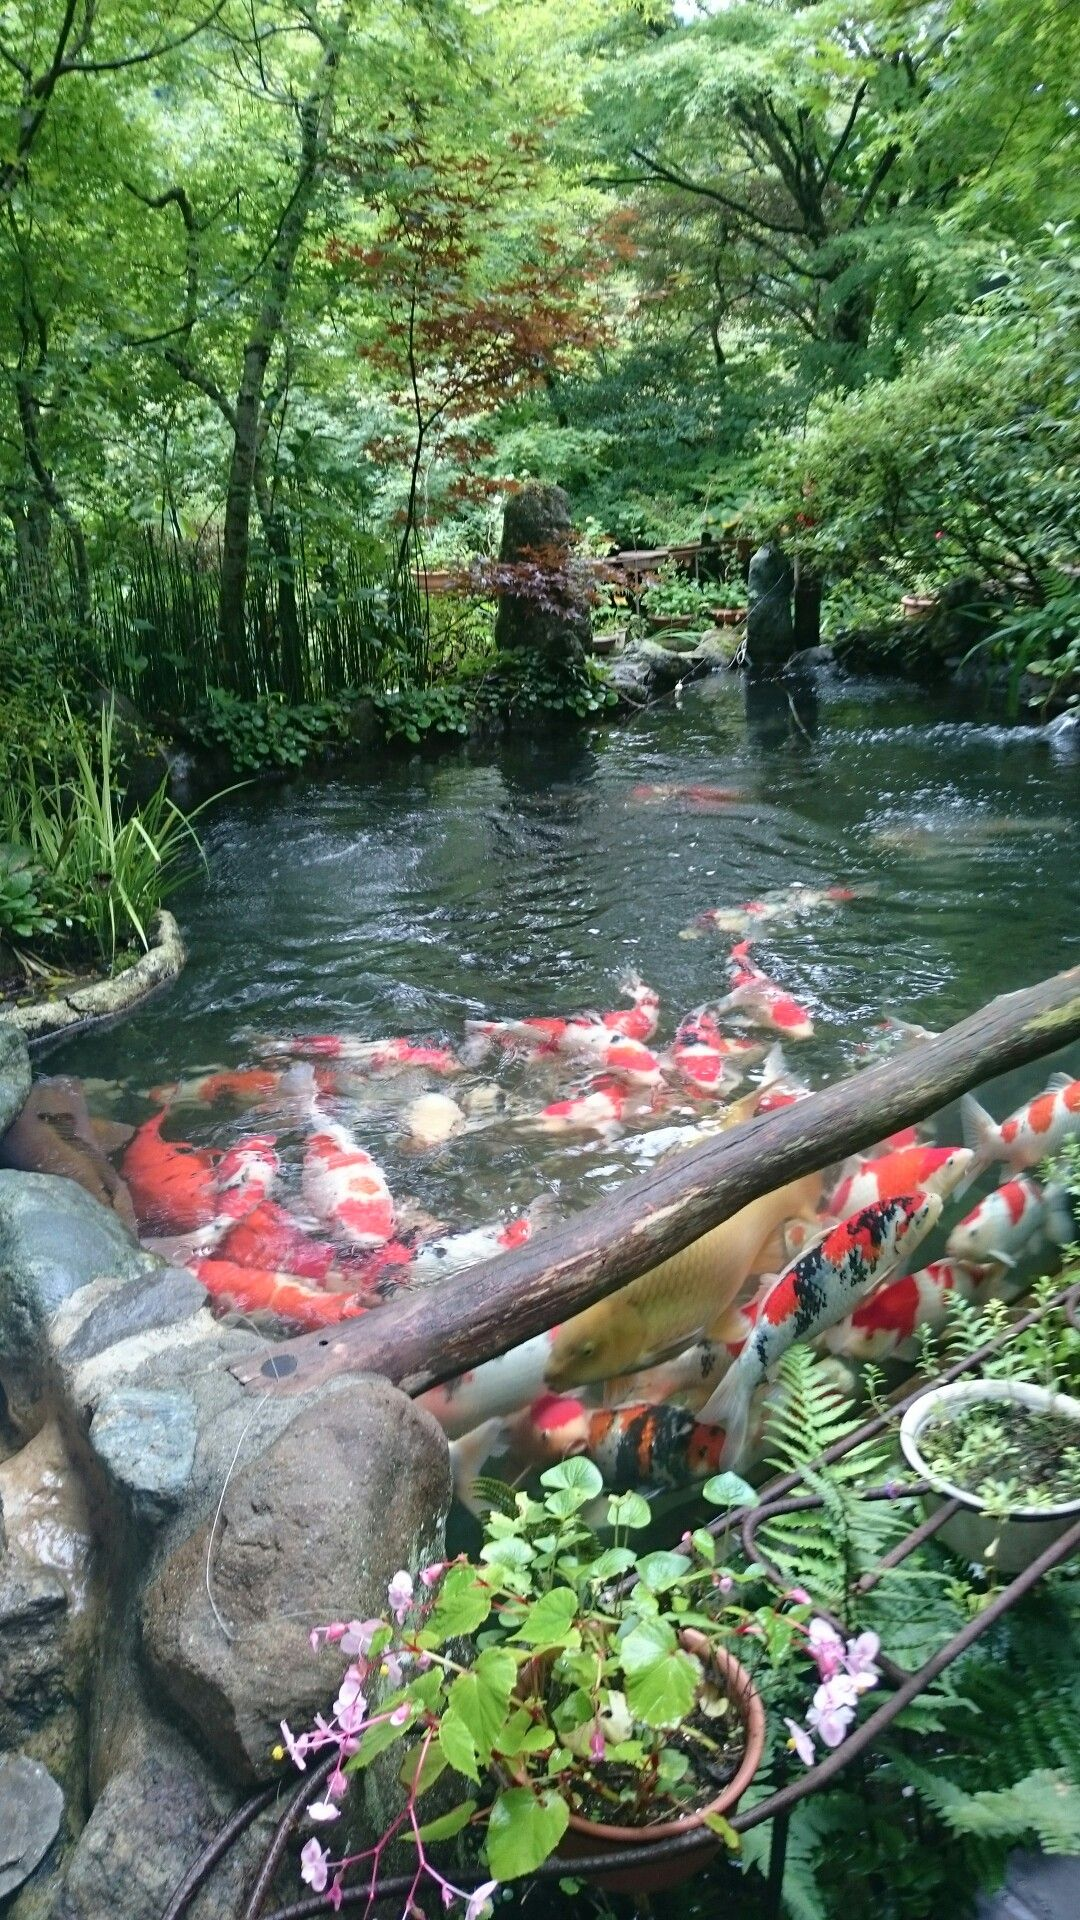 Koi pond garden waterfalls fountains and ponds for Japanese koi pond garden